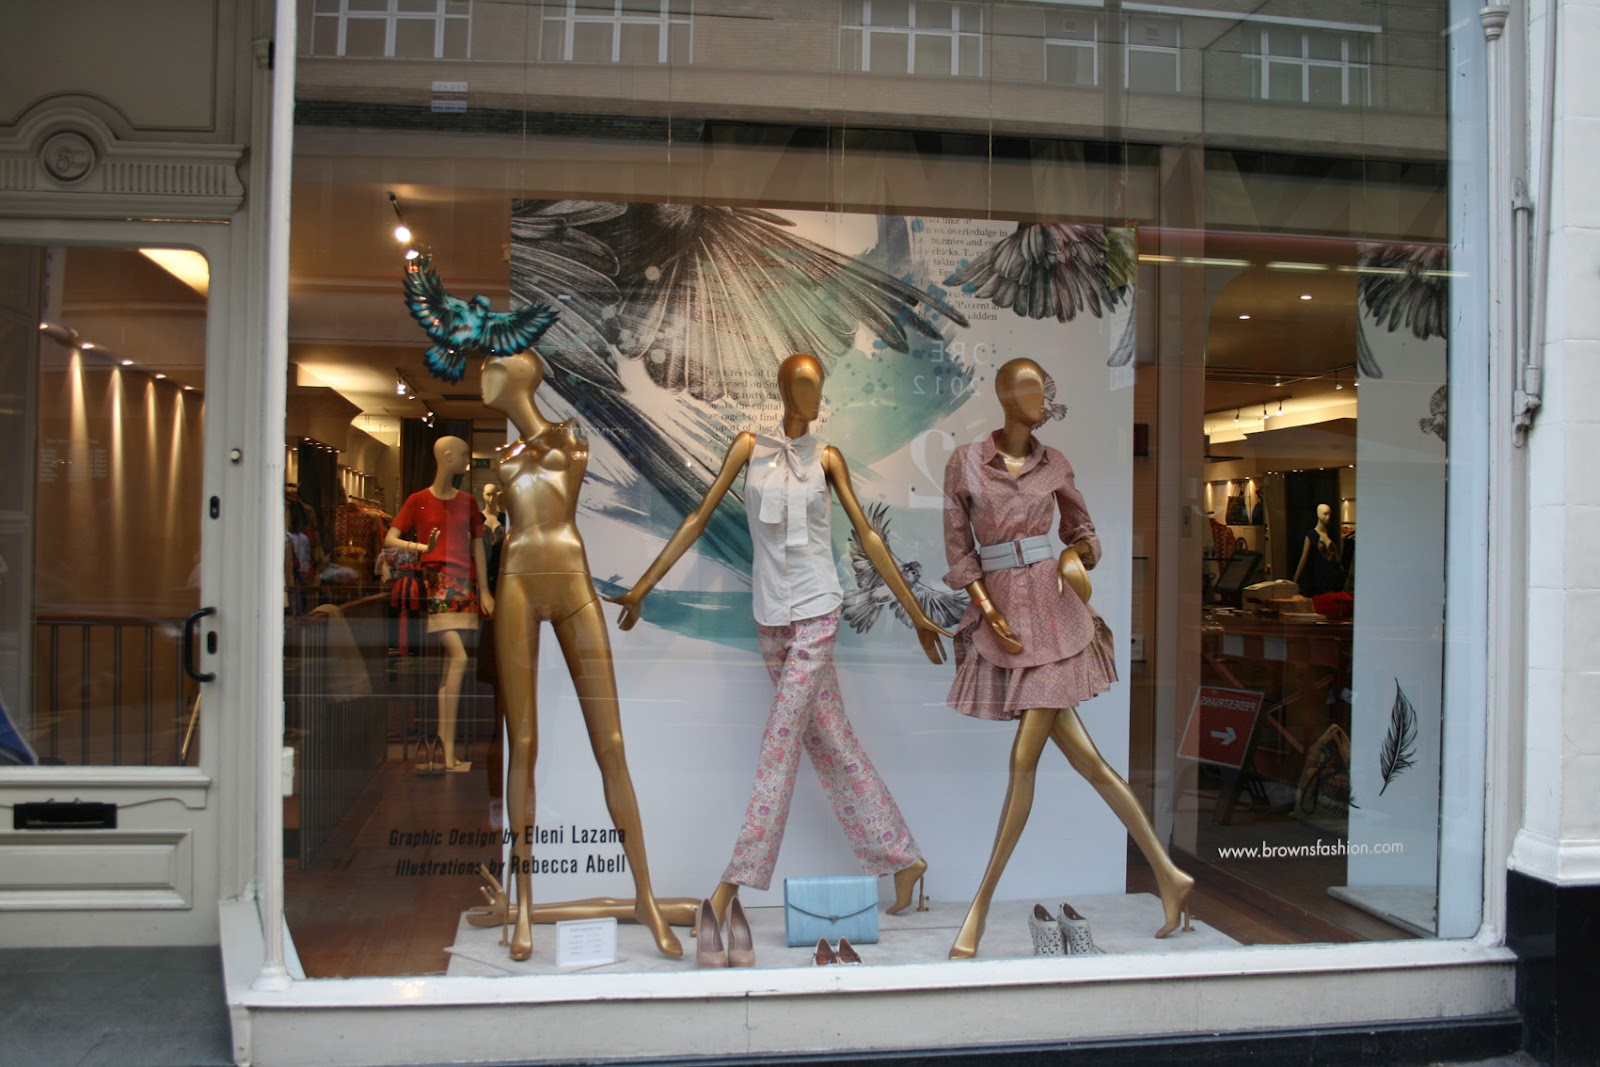 Positioned in the same way, three mannequins, dressed in pastel colors, a blue gorgeous bird and few accessories are placed in this window display for Easter.